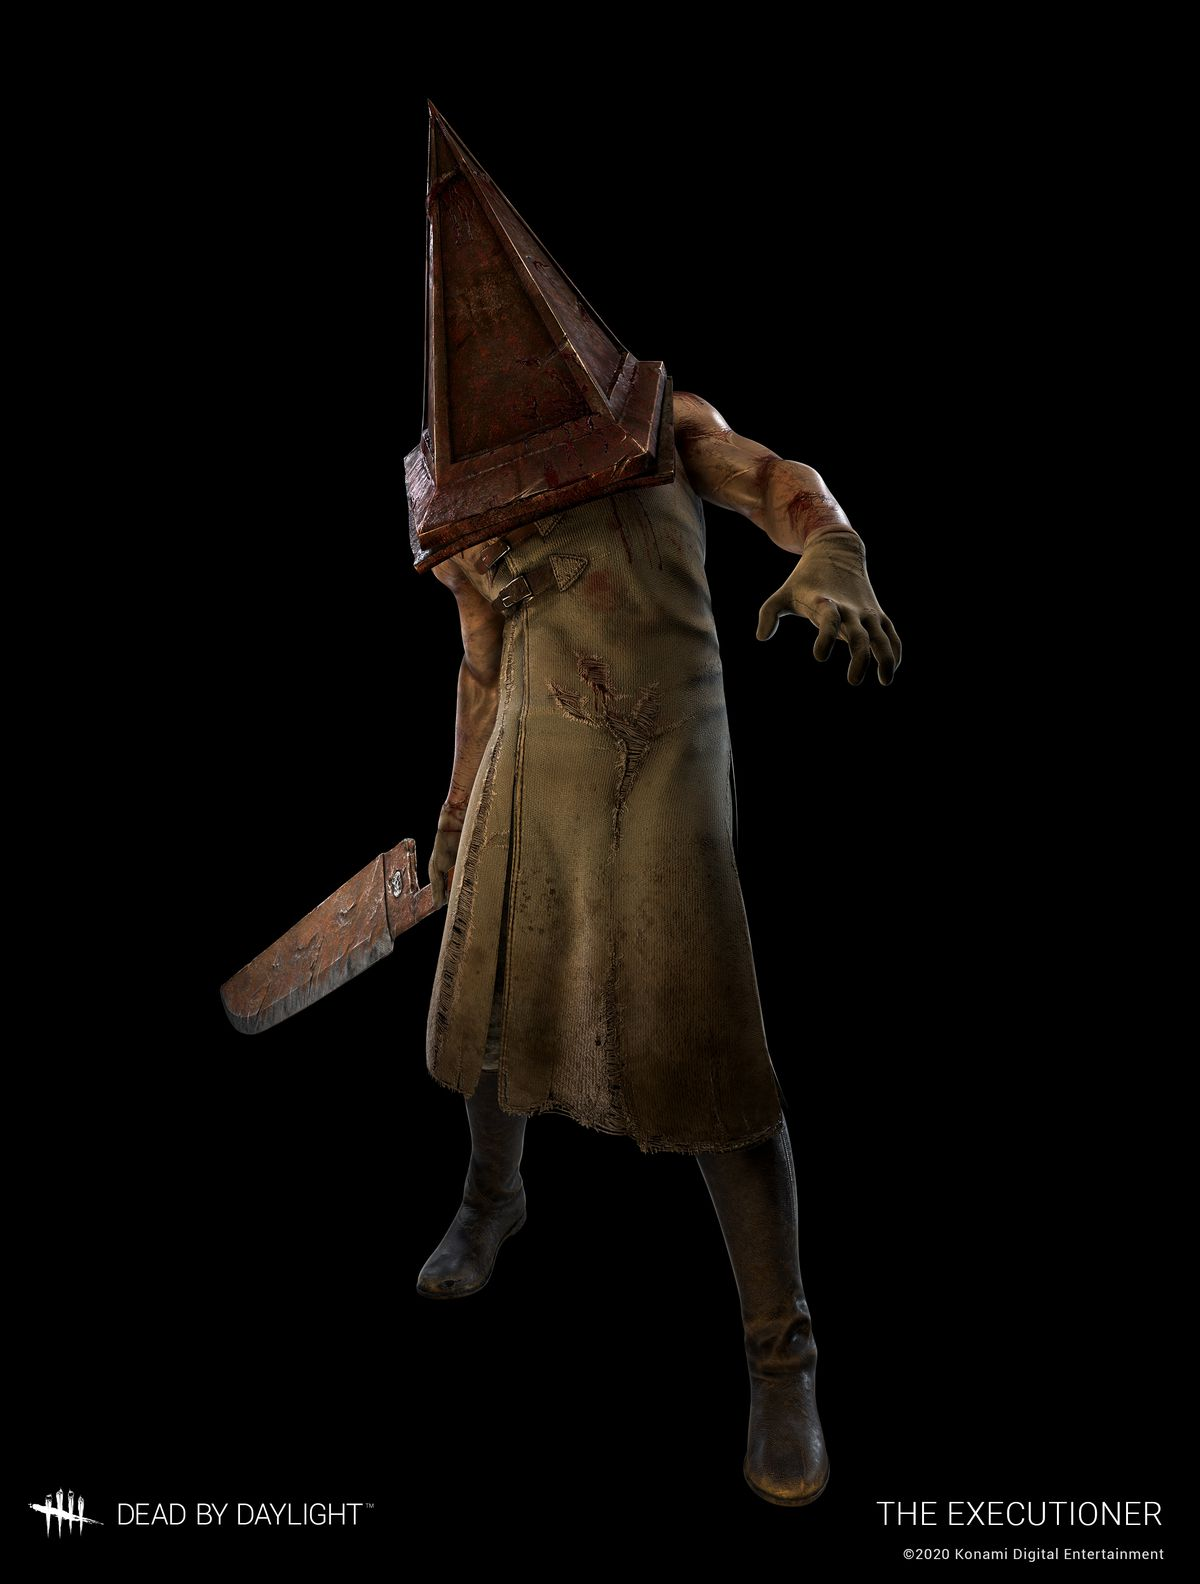 Silent Hill Dlc For Dead By Daylight Includes Pyramid Head Killer